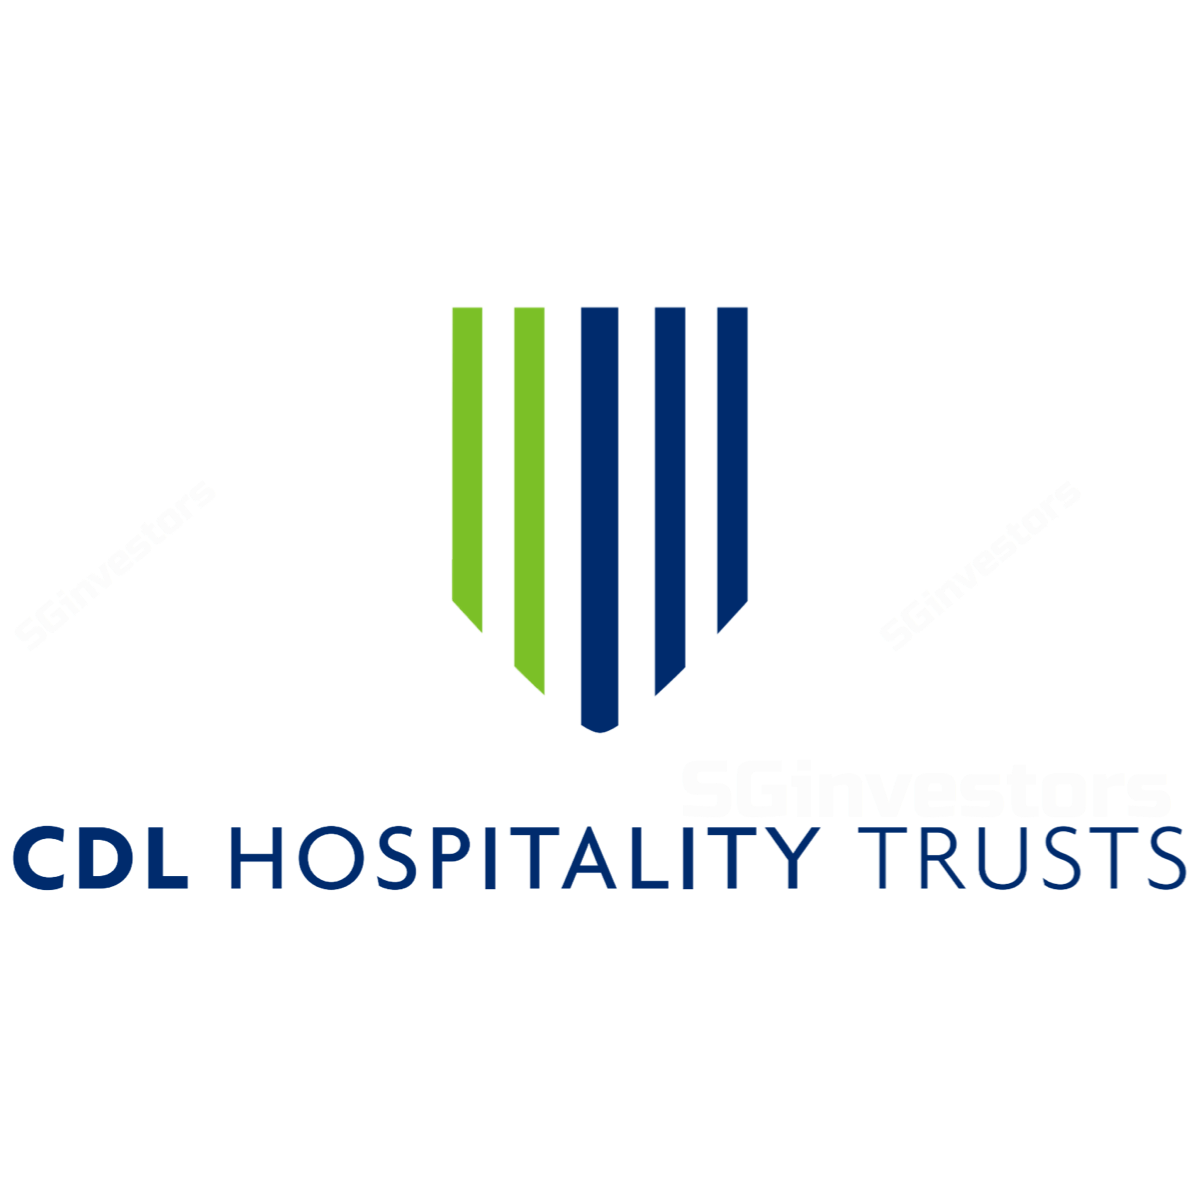 CDL Hospitality Trusts - DBS Vickers 2018-01-29: Here Is Where Growth Resides